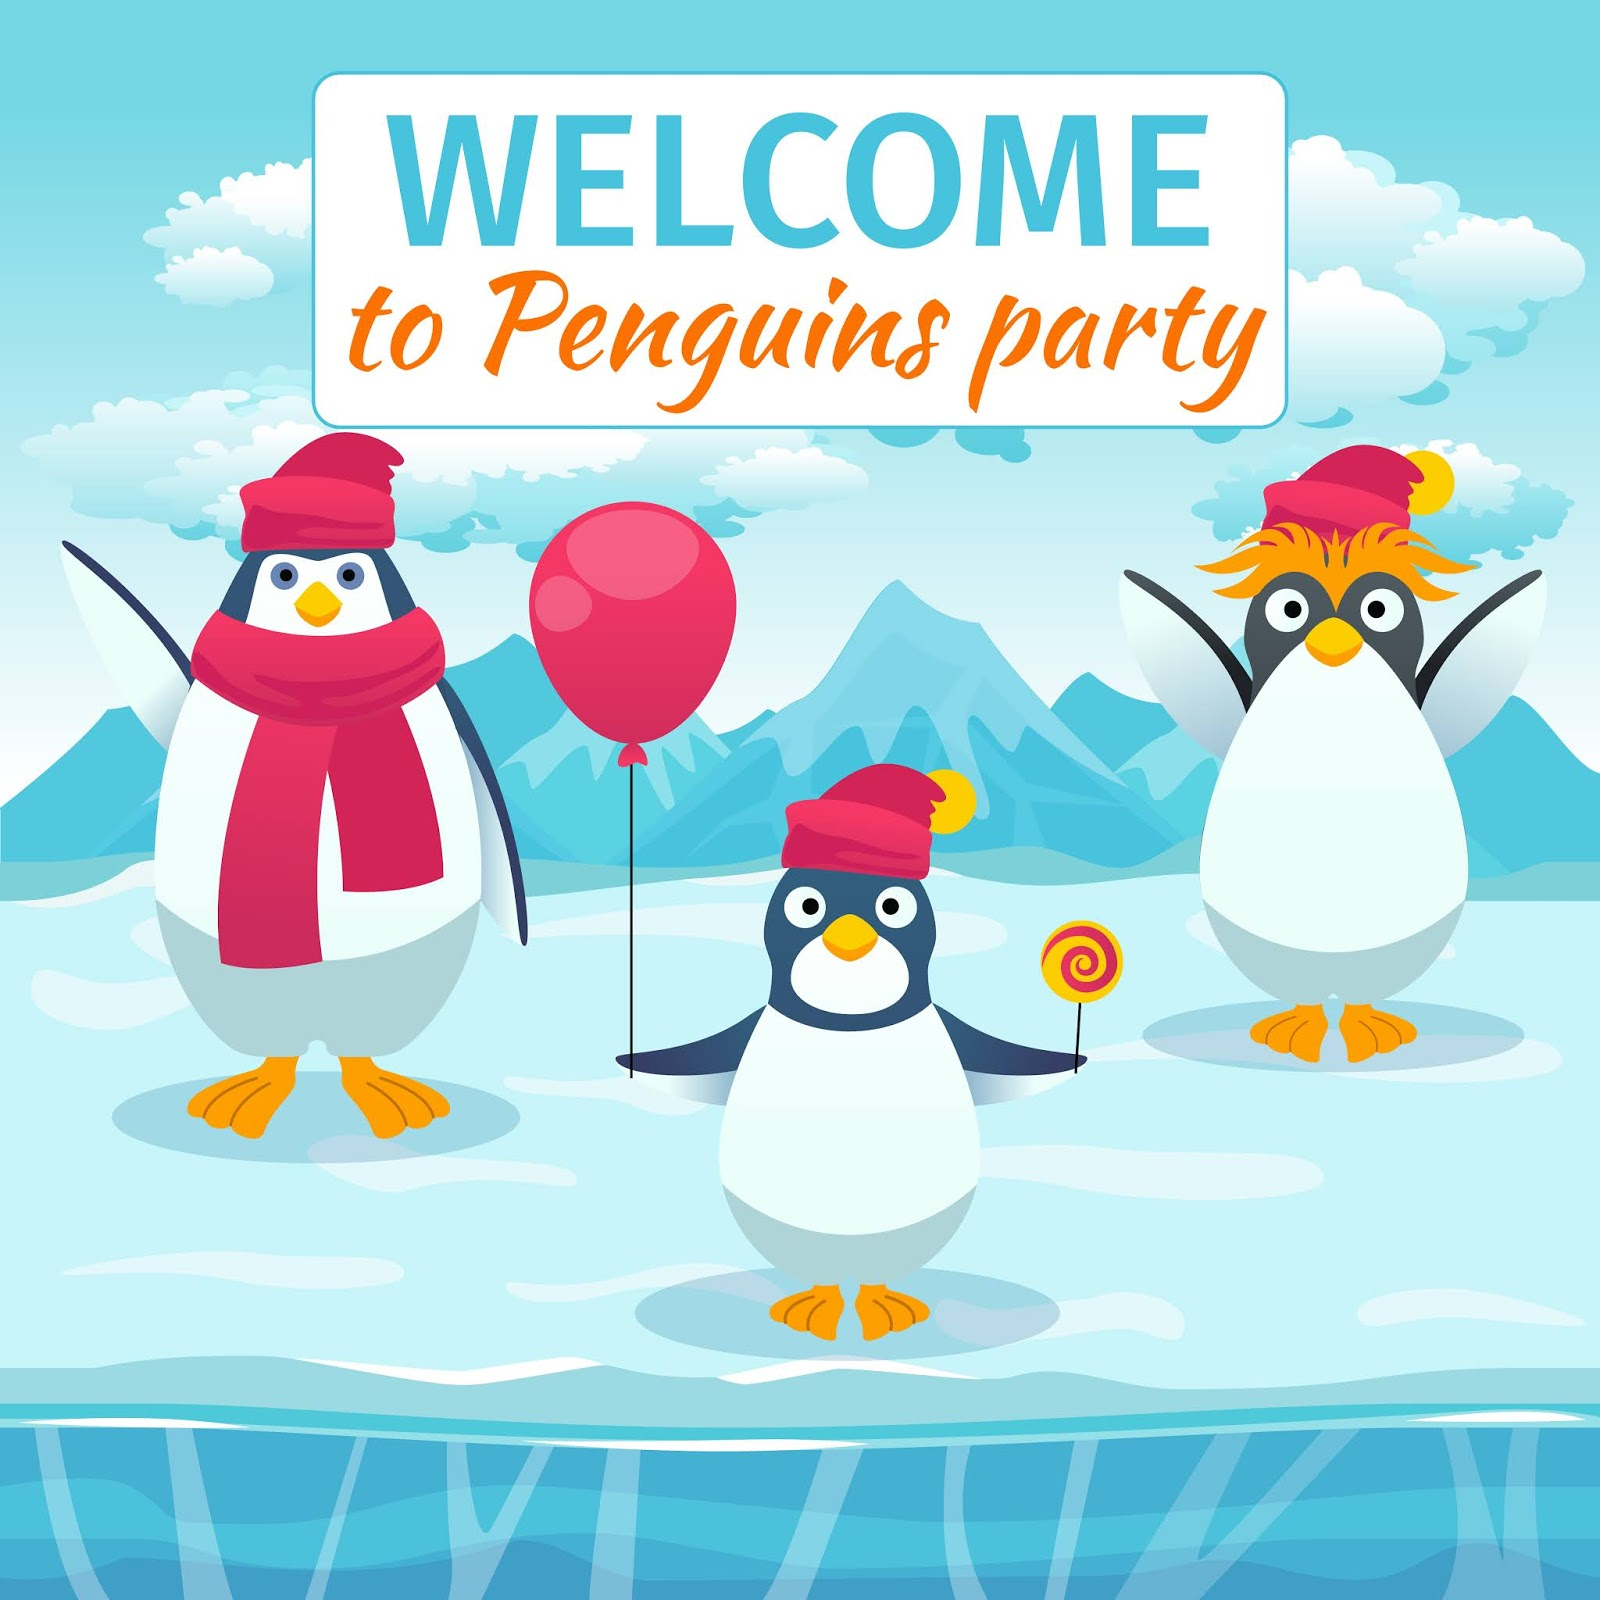 Funny Penguins Card Party Invitation Welcome Festival Holiday Event Celebrate Template Banner Vector Illustration Free Download Vector CDR, AI, EPS and PNG Formats